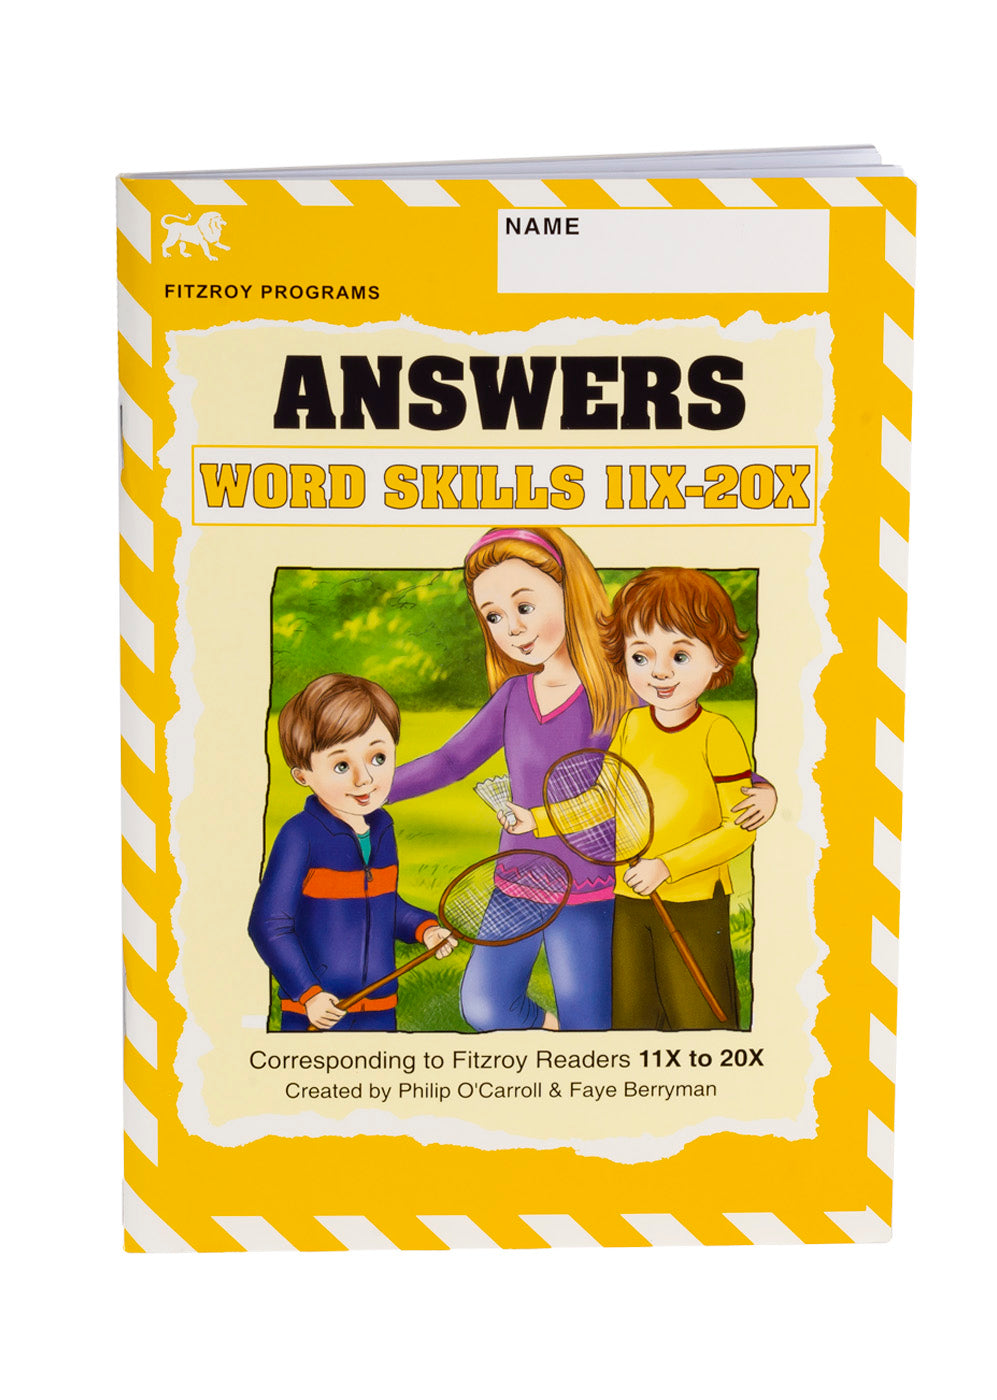 Fitzroy Word Skills Answer Book 11X-20X